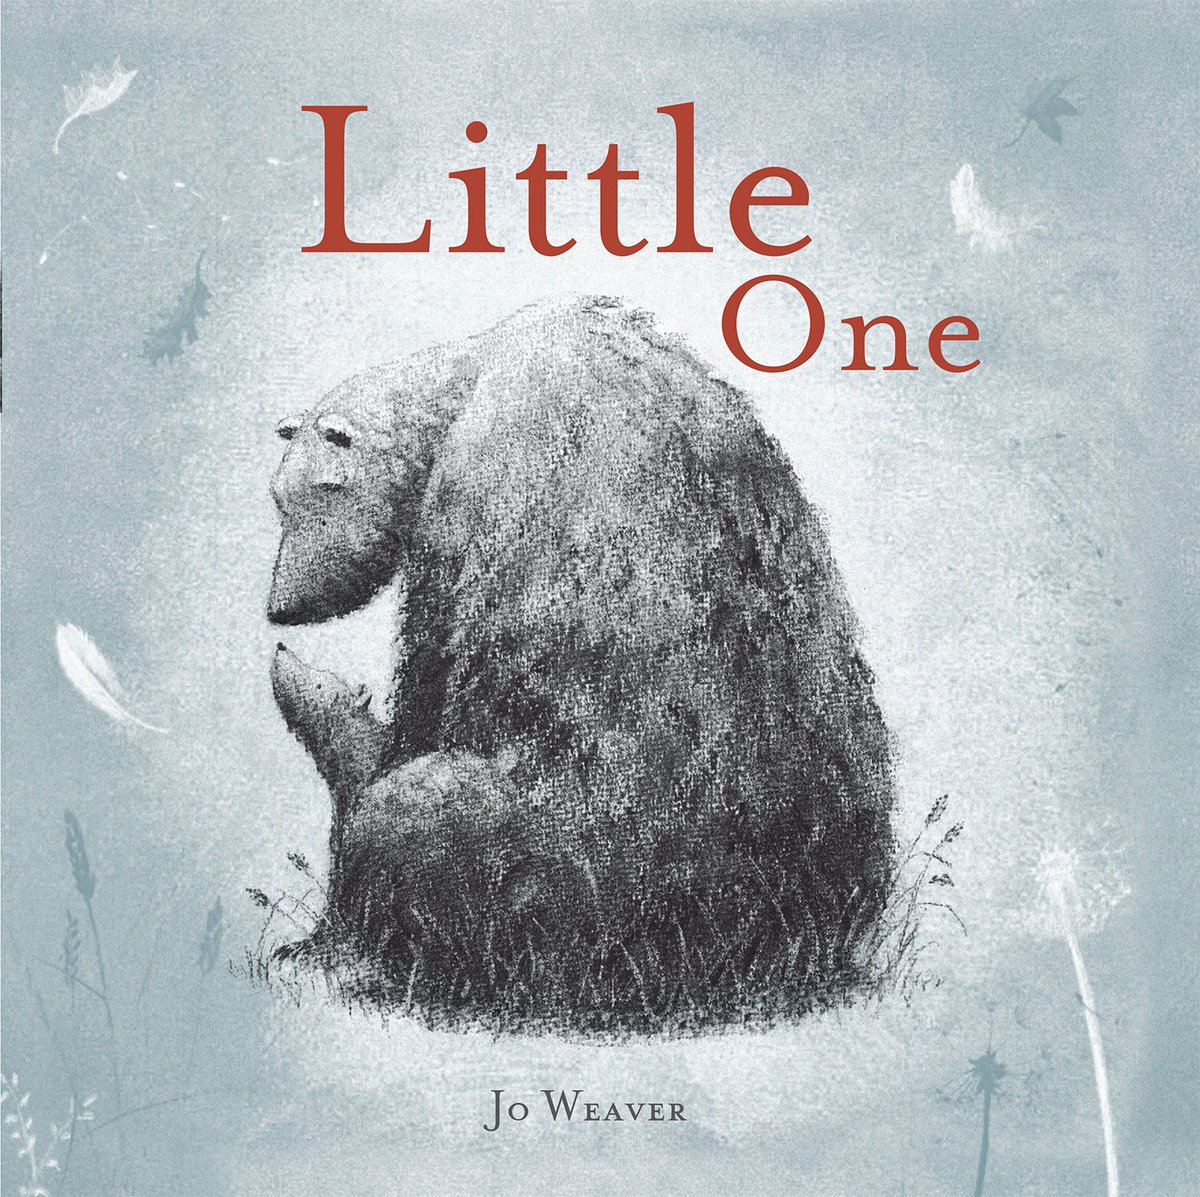 A thoughtful tale of discovery & independence from @JoWeaver6, Little One comes out March 1! https://t.co/pMt6VWsHbt https://t.co/oR3QOy9rEI